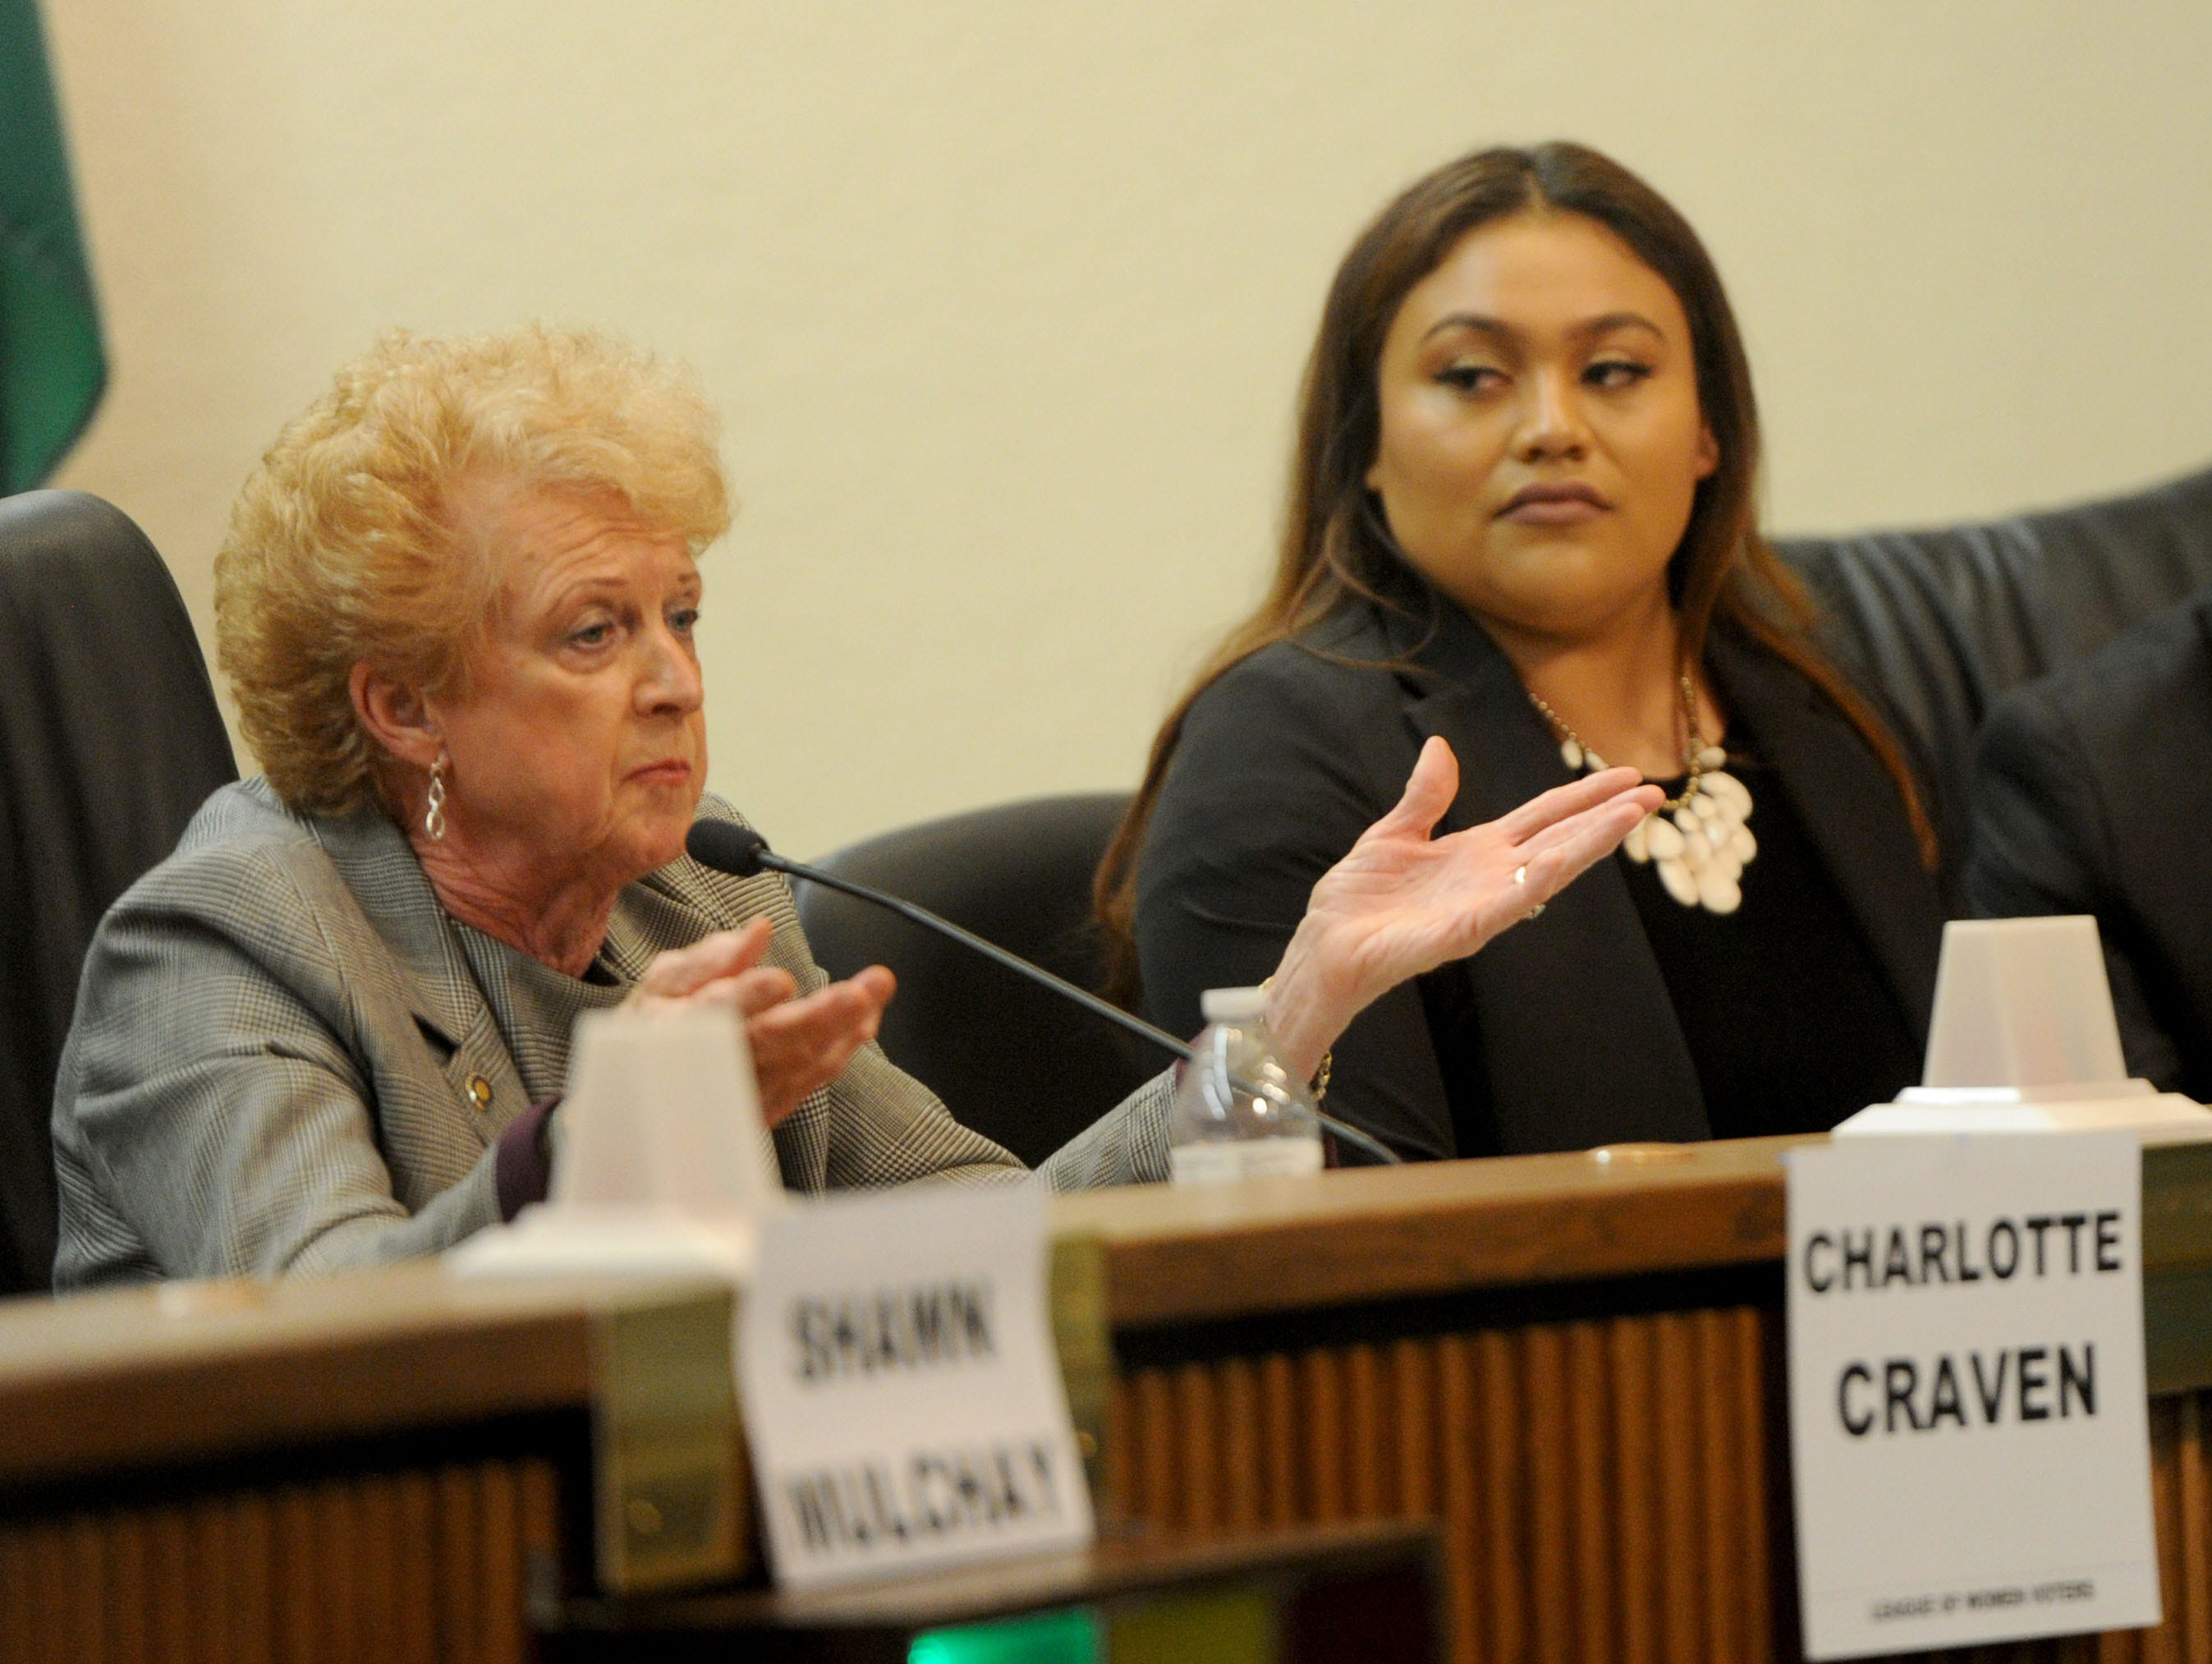 Charlotte Craven, from left, and Jessica Romero answer questions Tuesday night during a Camarillo City Council forum.